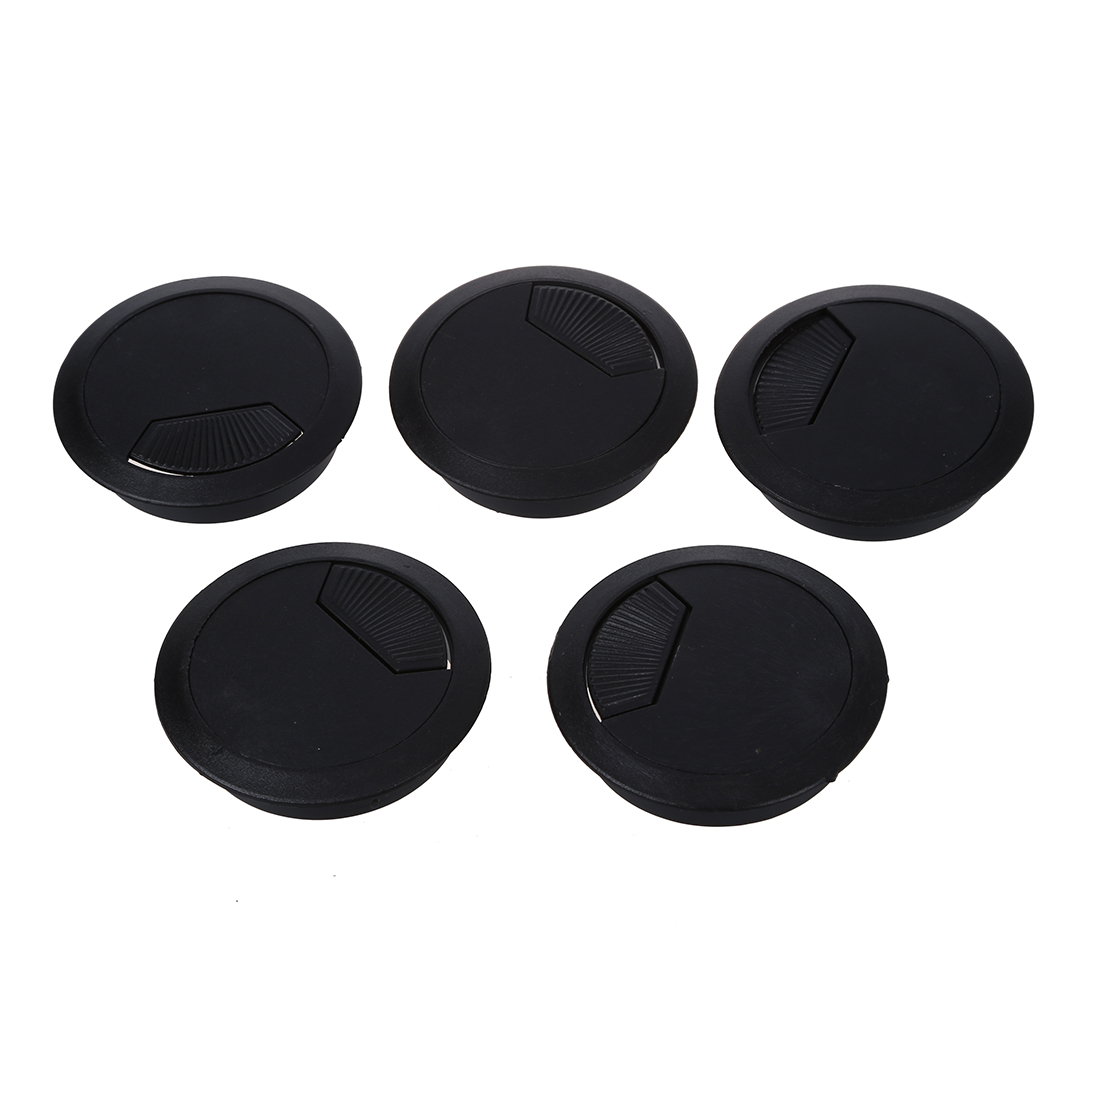 5 Pcs Home Office Desk Table Computer 60mm Cable Cord Grommet Hole Black5 Pcs Home Office Desk Table Computer 60mm Cable Cord Grommet Hole Black